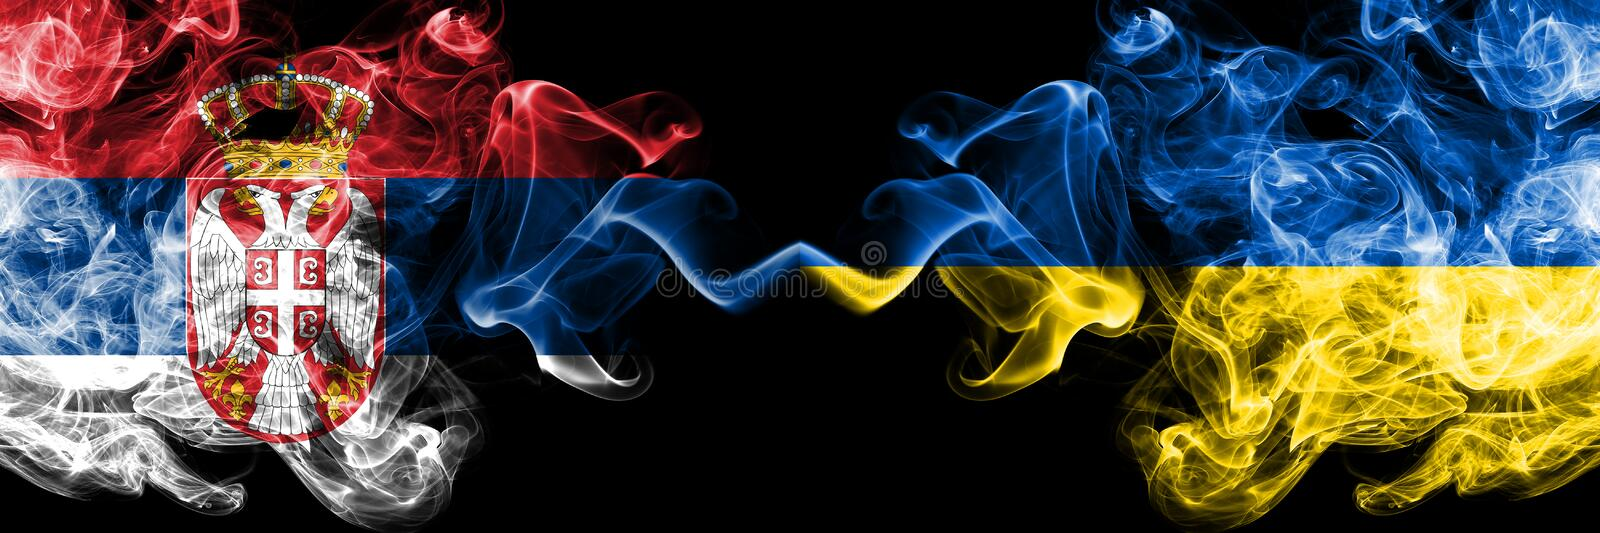 Serbia vs Ukraine, Ukrainian smoky mystic flags placed side by side. Thick colored silky smokes combination of Serbian and Ukraine. Ukrainian flag stock illustration